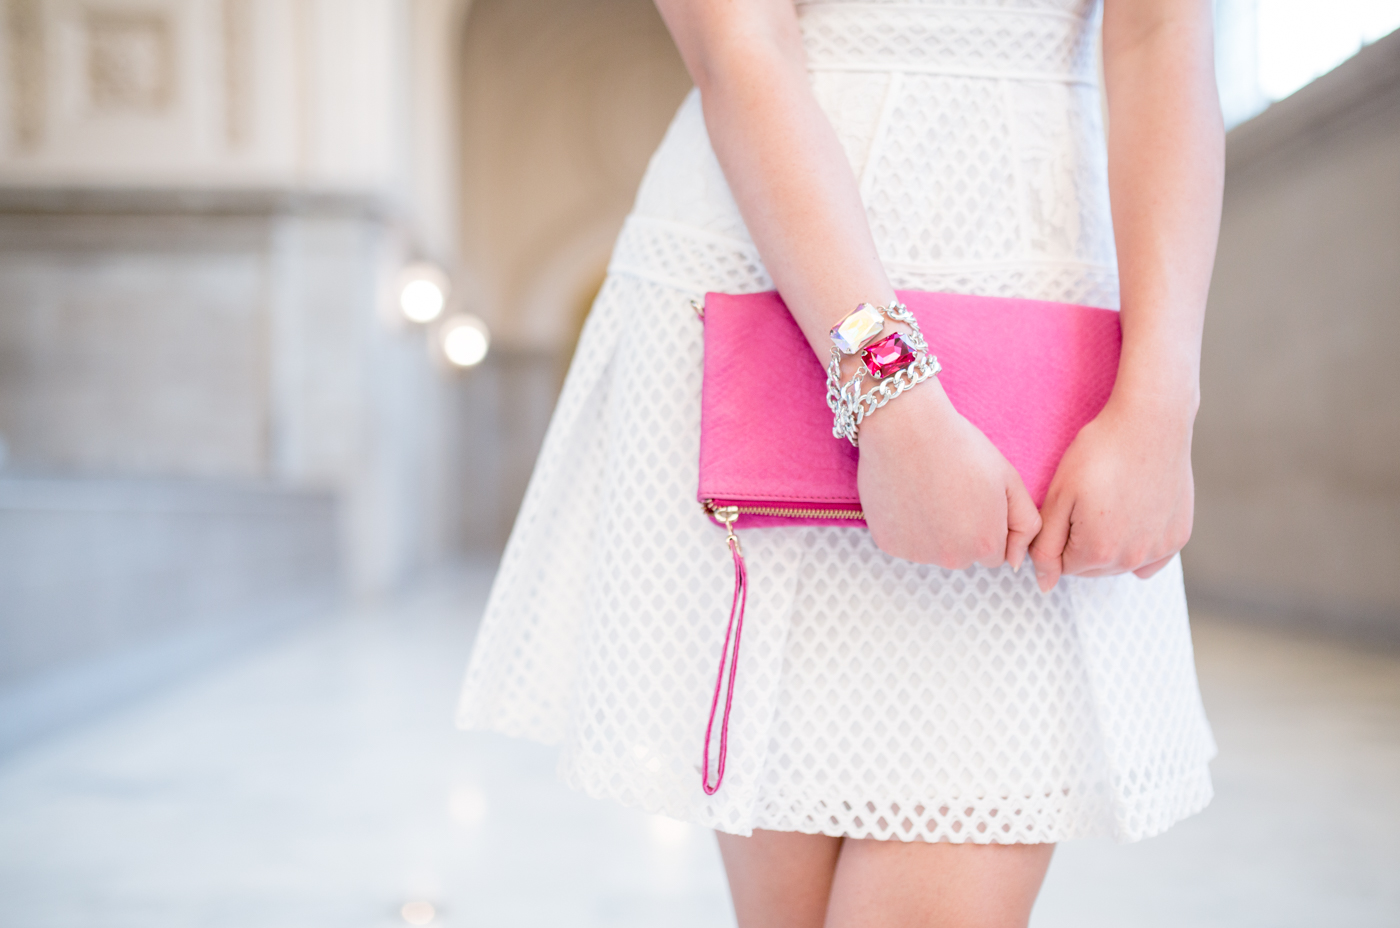 Accessorize in pink | The Chic Diary